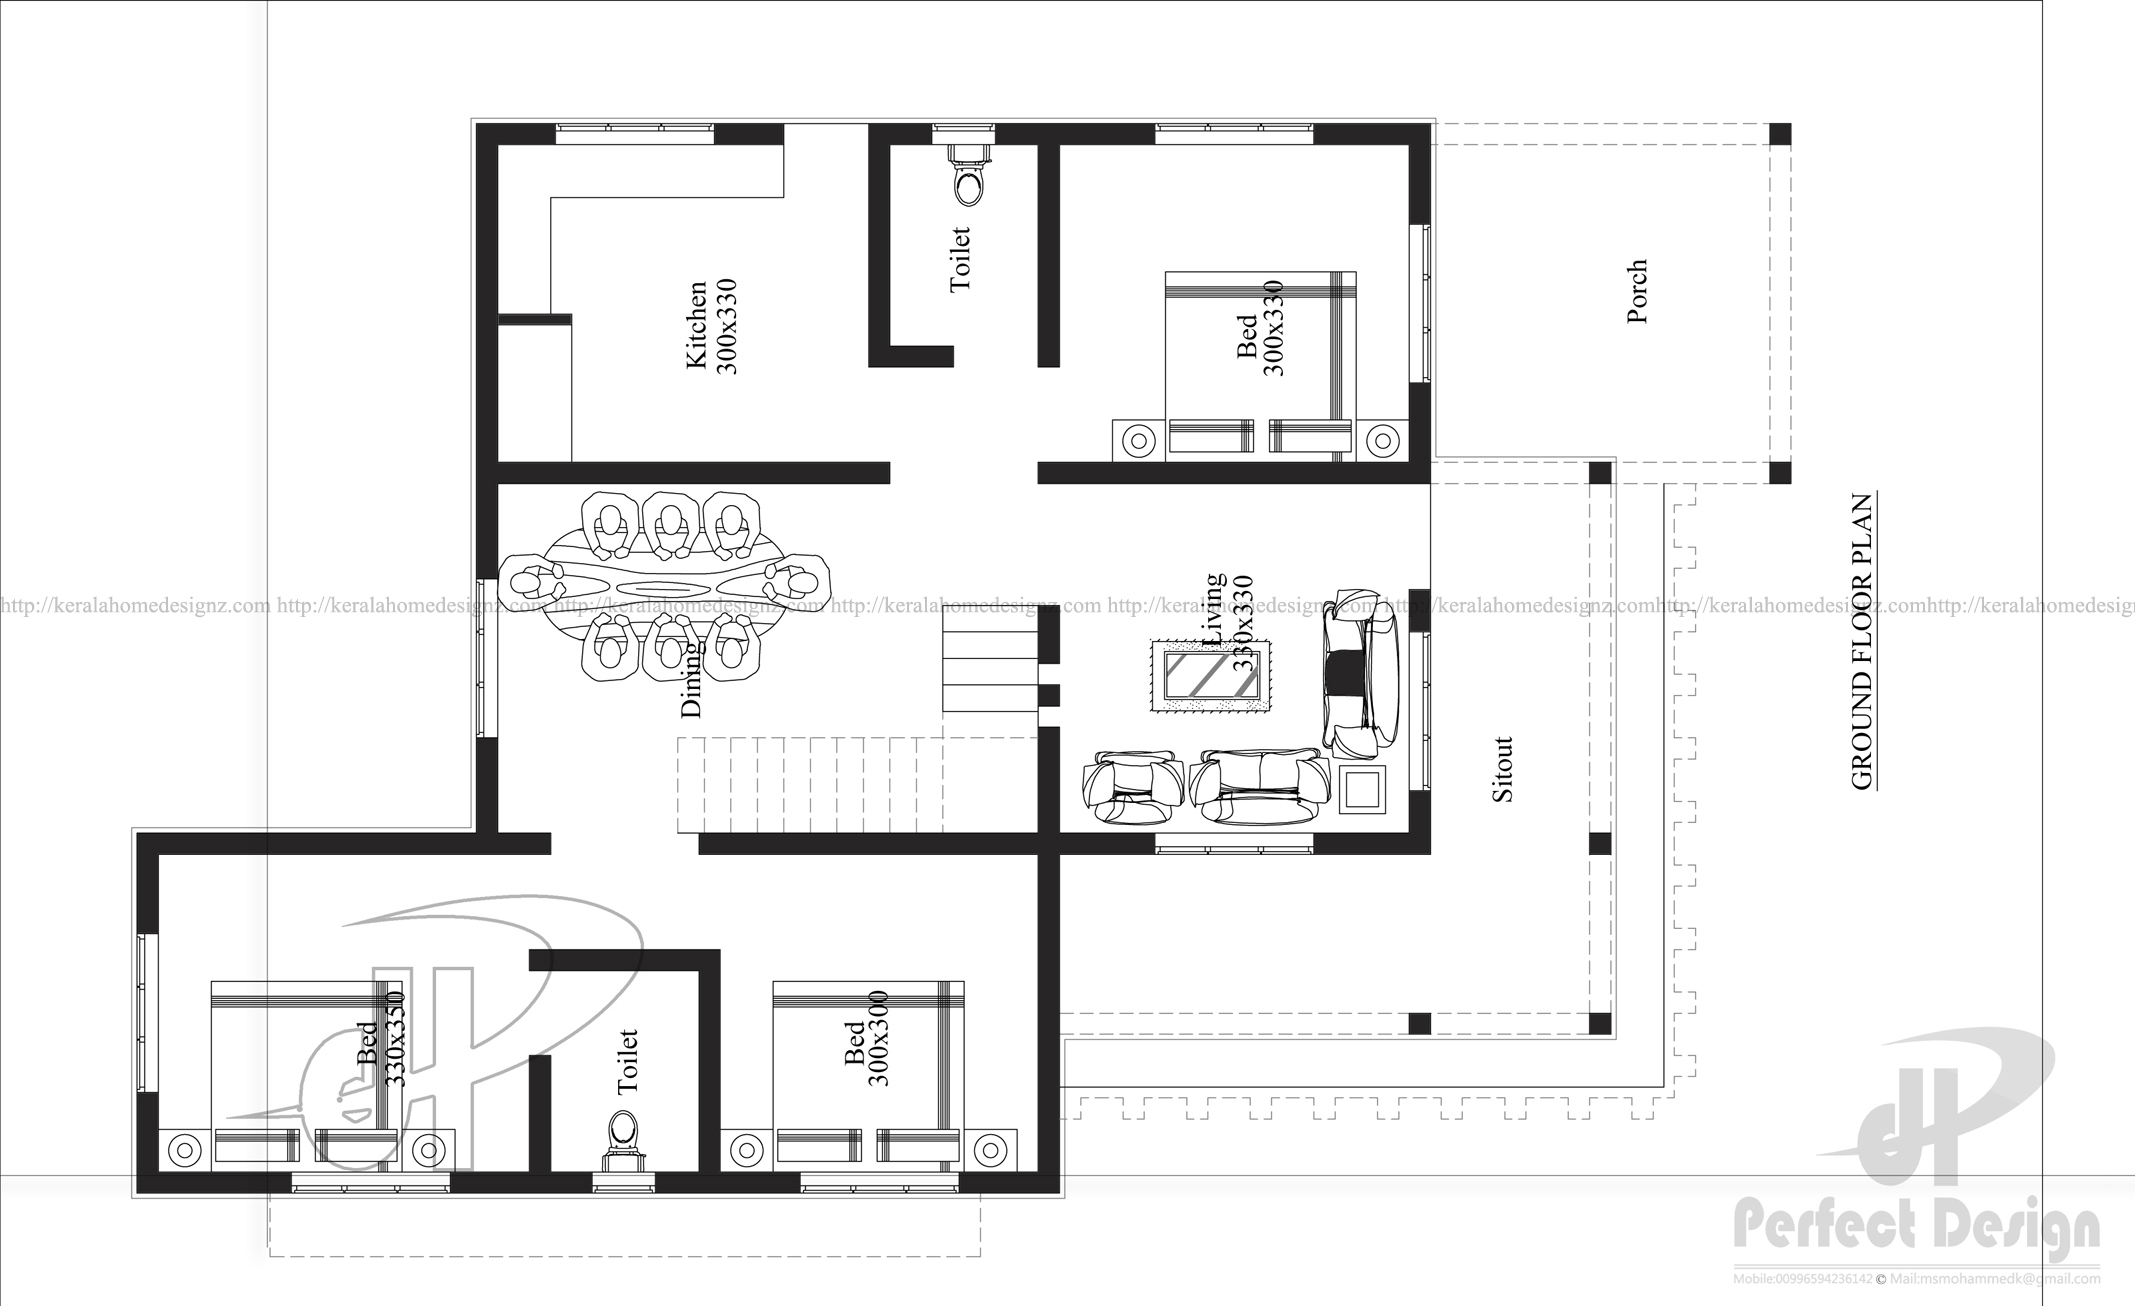 Well designed home plans homemade ftempo for Well designed bedrooms